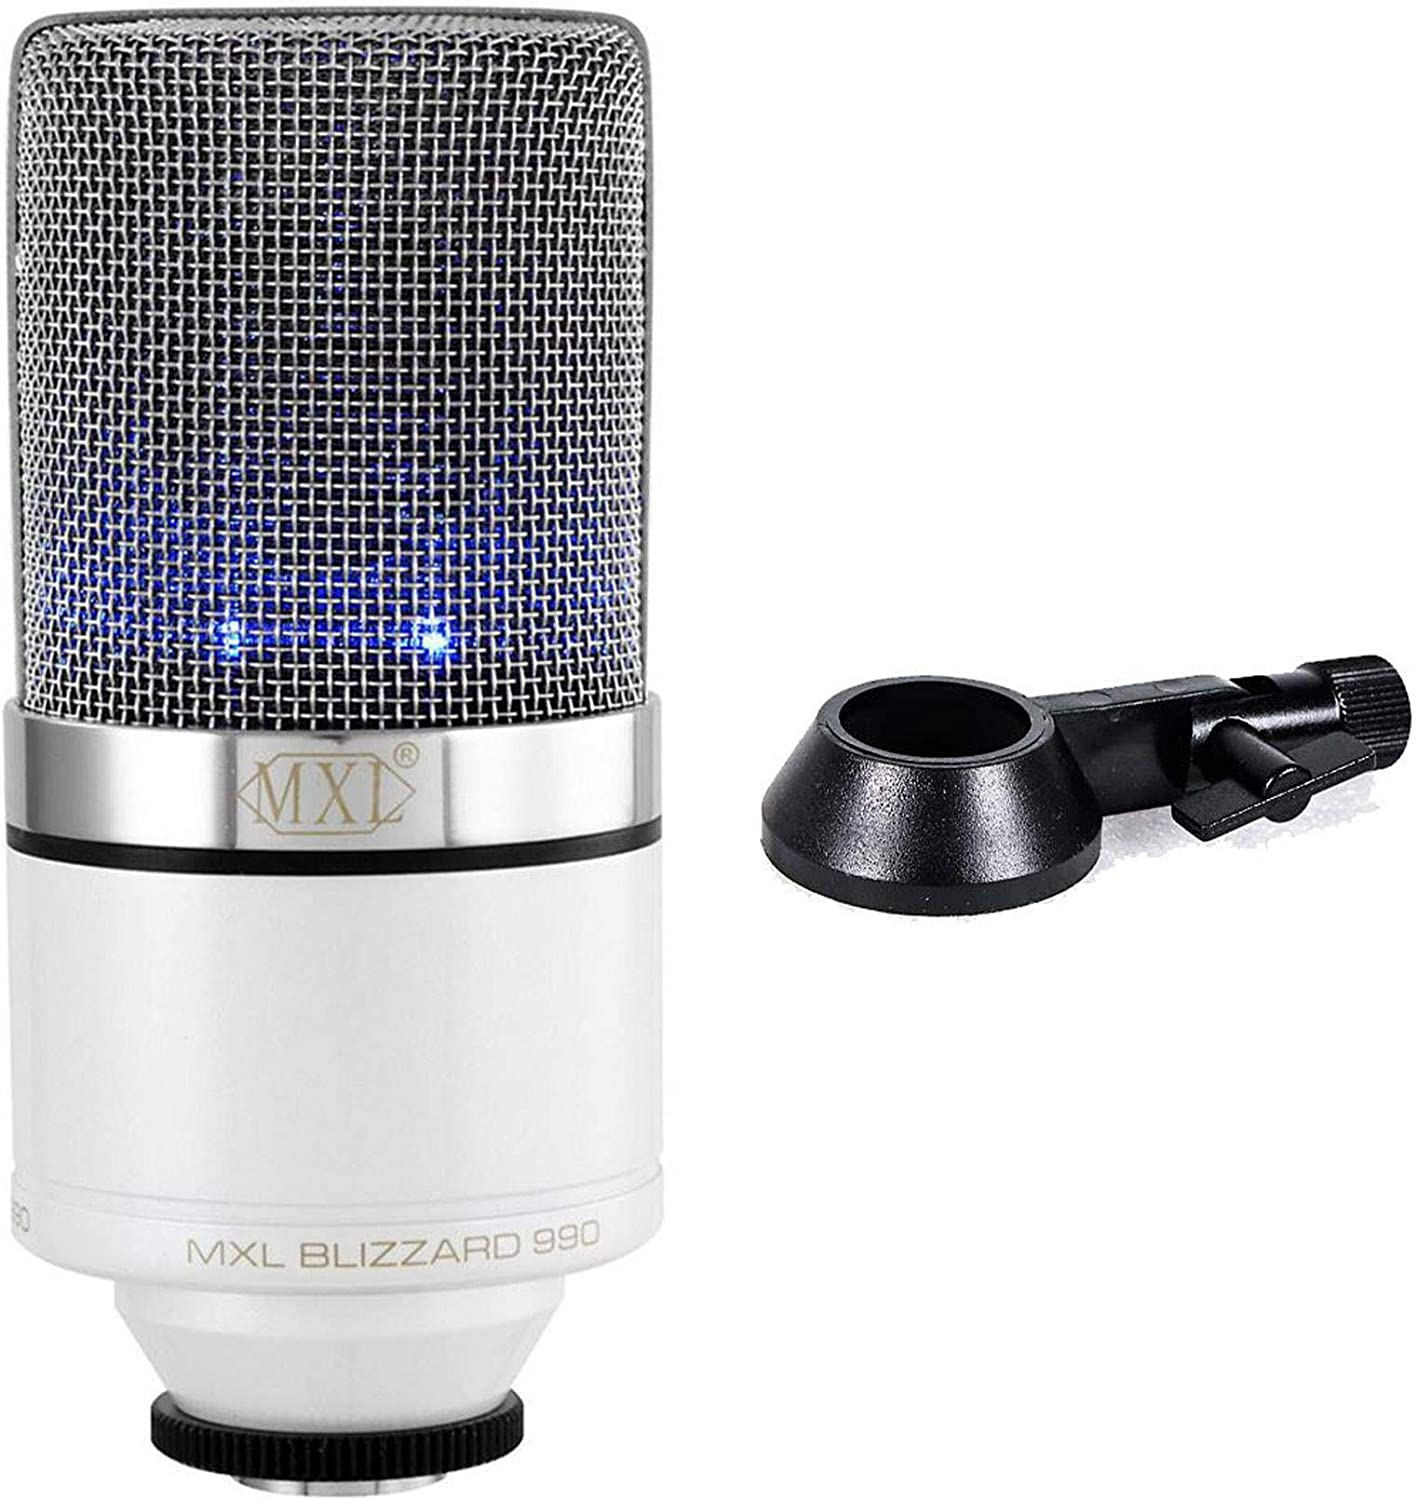 MXL Mics 990 Blizzard Condenser Microphone with Blue LED Lights for Podcasting, Voice Overs, Studio Recordings